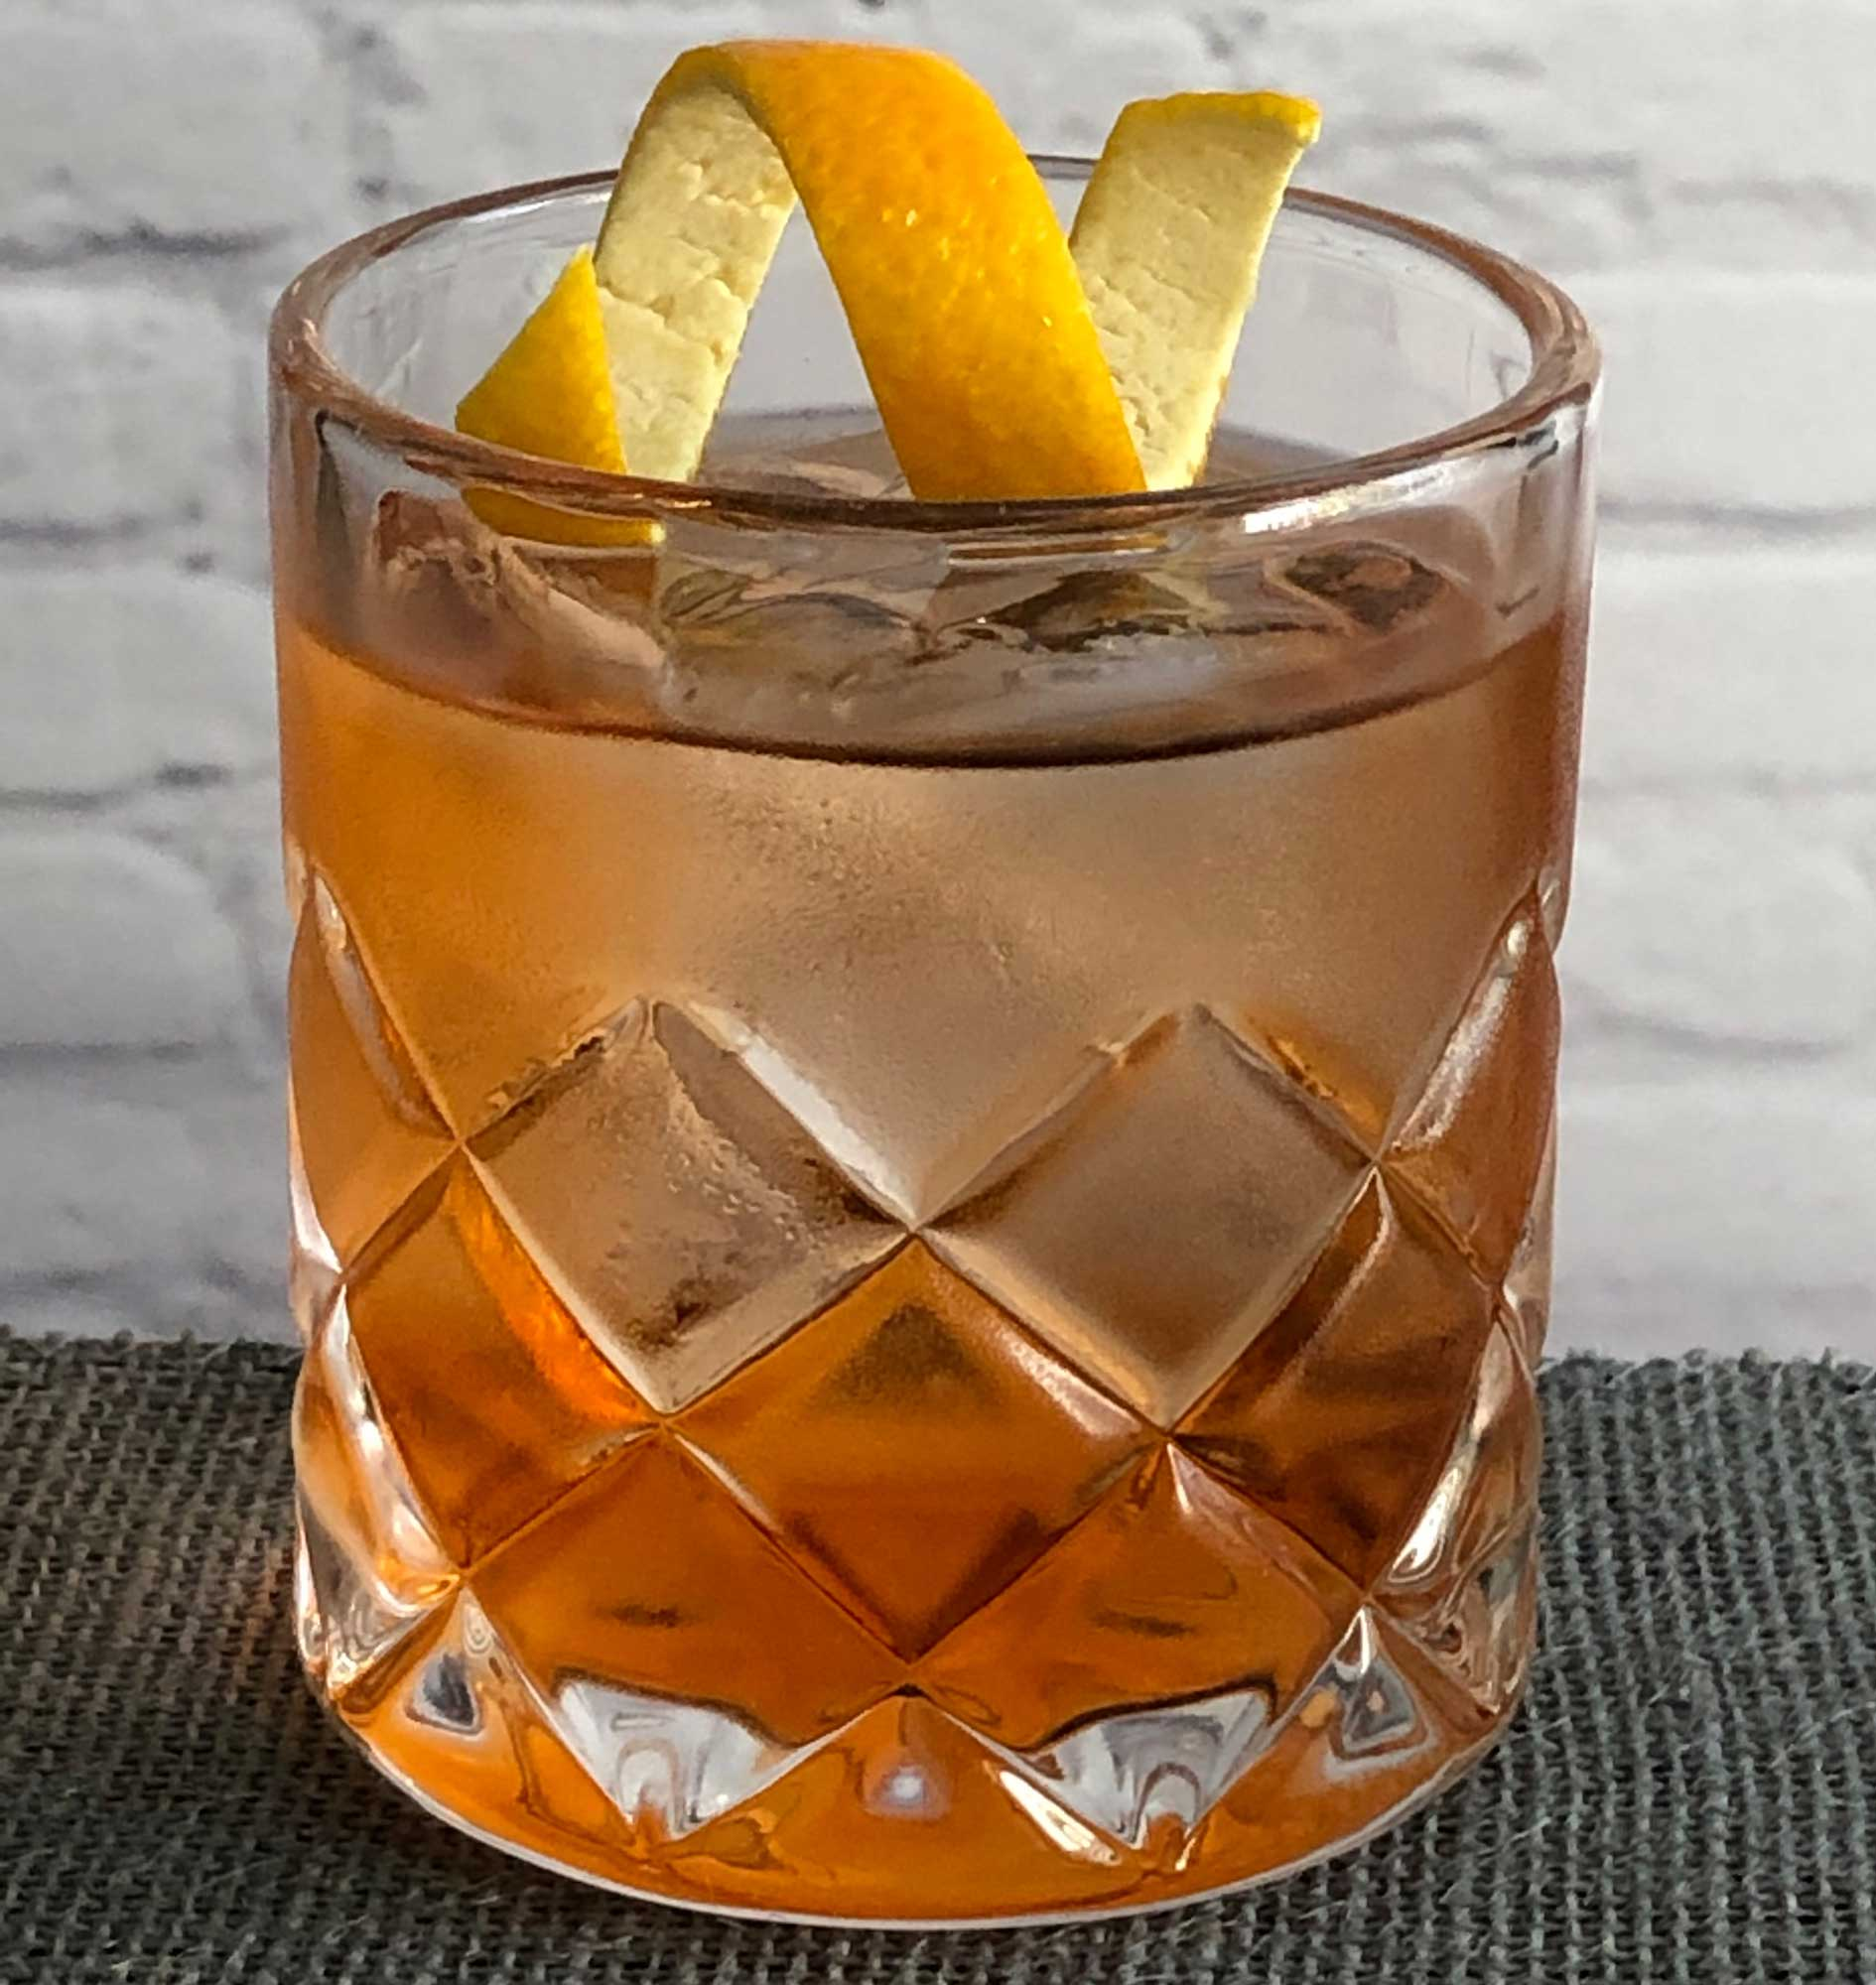 An example of the Rosita, the mixed drink (cocktail) featuring blanco tequila, Dolin Dry Vermouth de Chambéry, Dolin Rouge Vermouth de Chambéry, and Aperitivo Cappelletti; photo by Lee Edwards